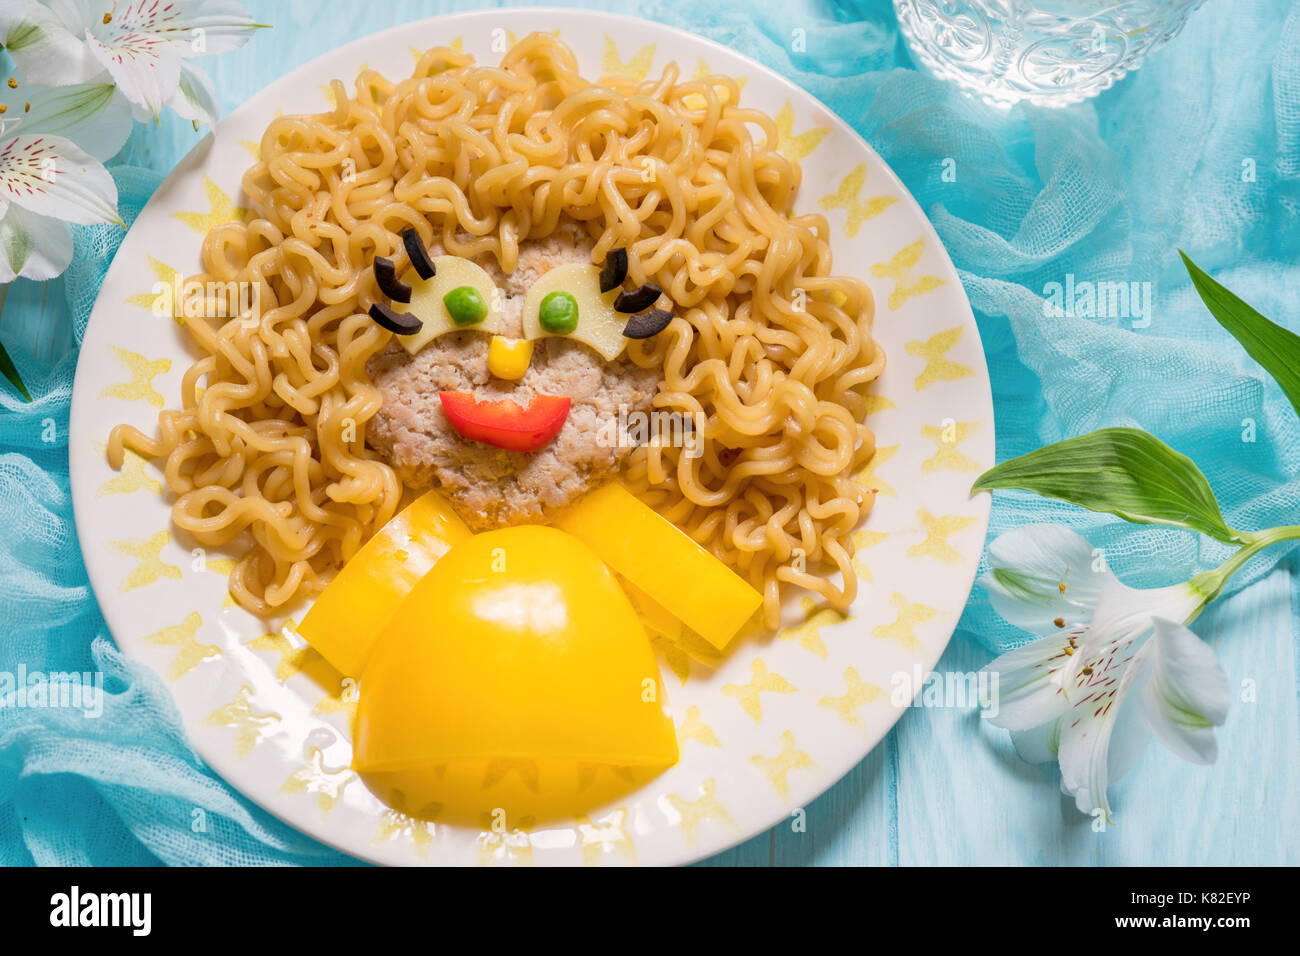 Funny Food Face with Cutlet, Pasta and Vegetables - Stock Image